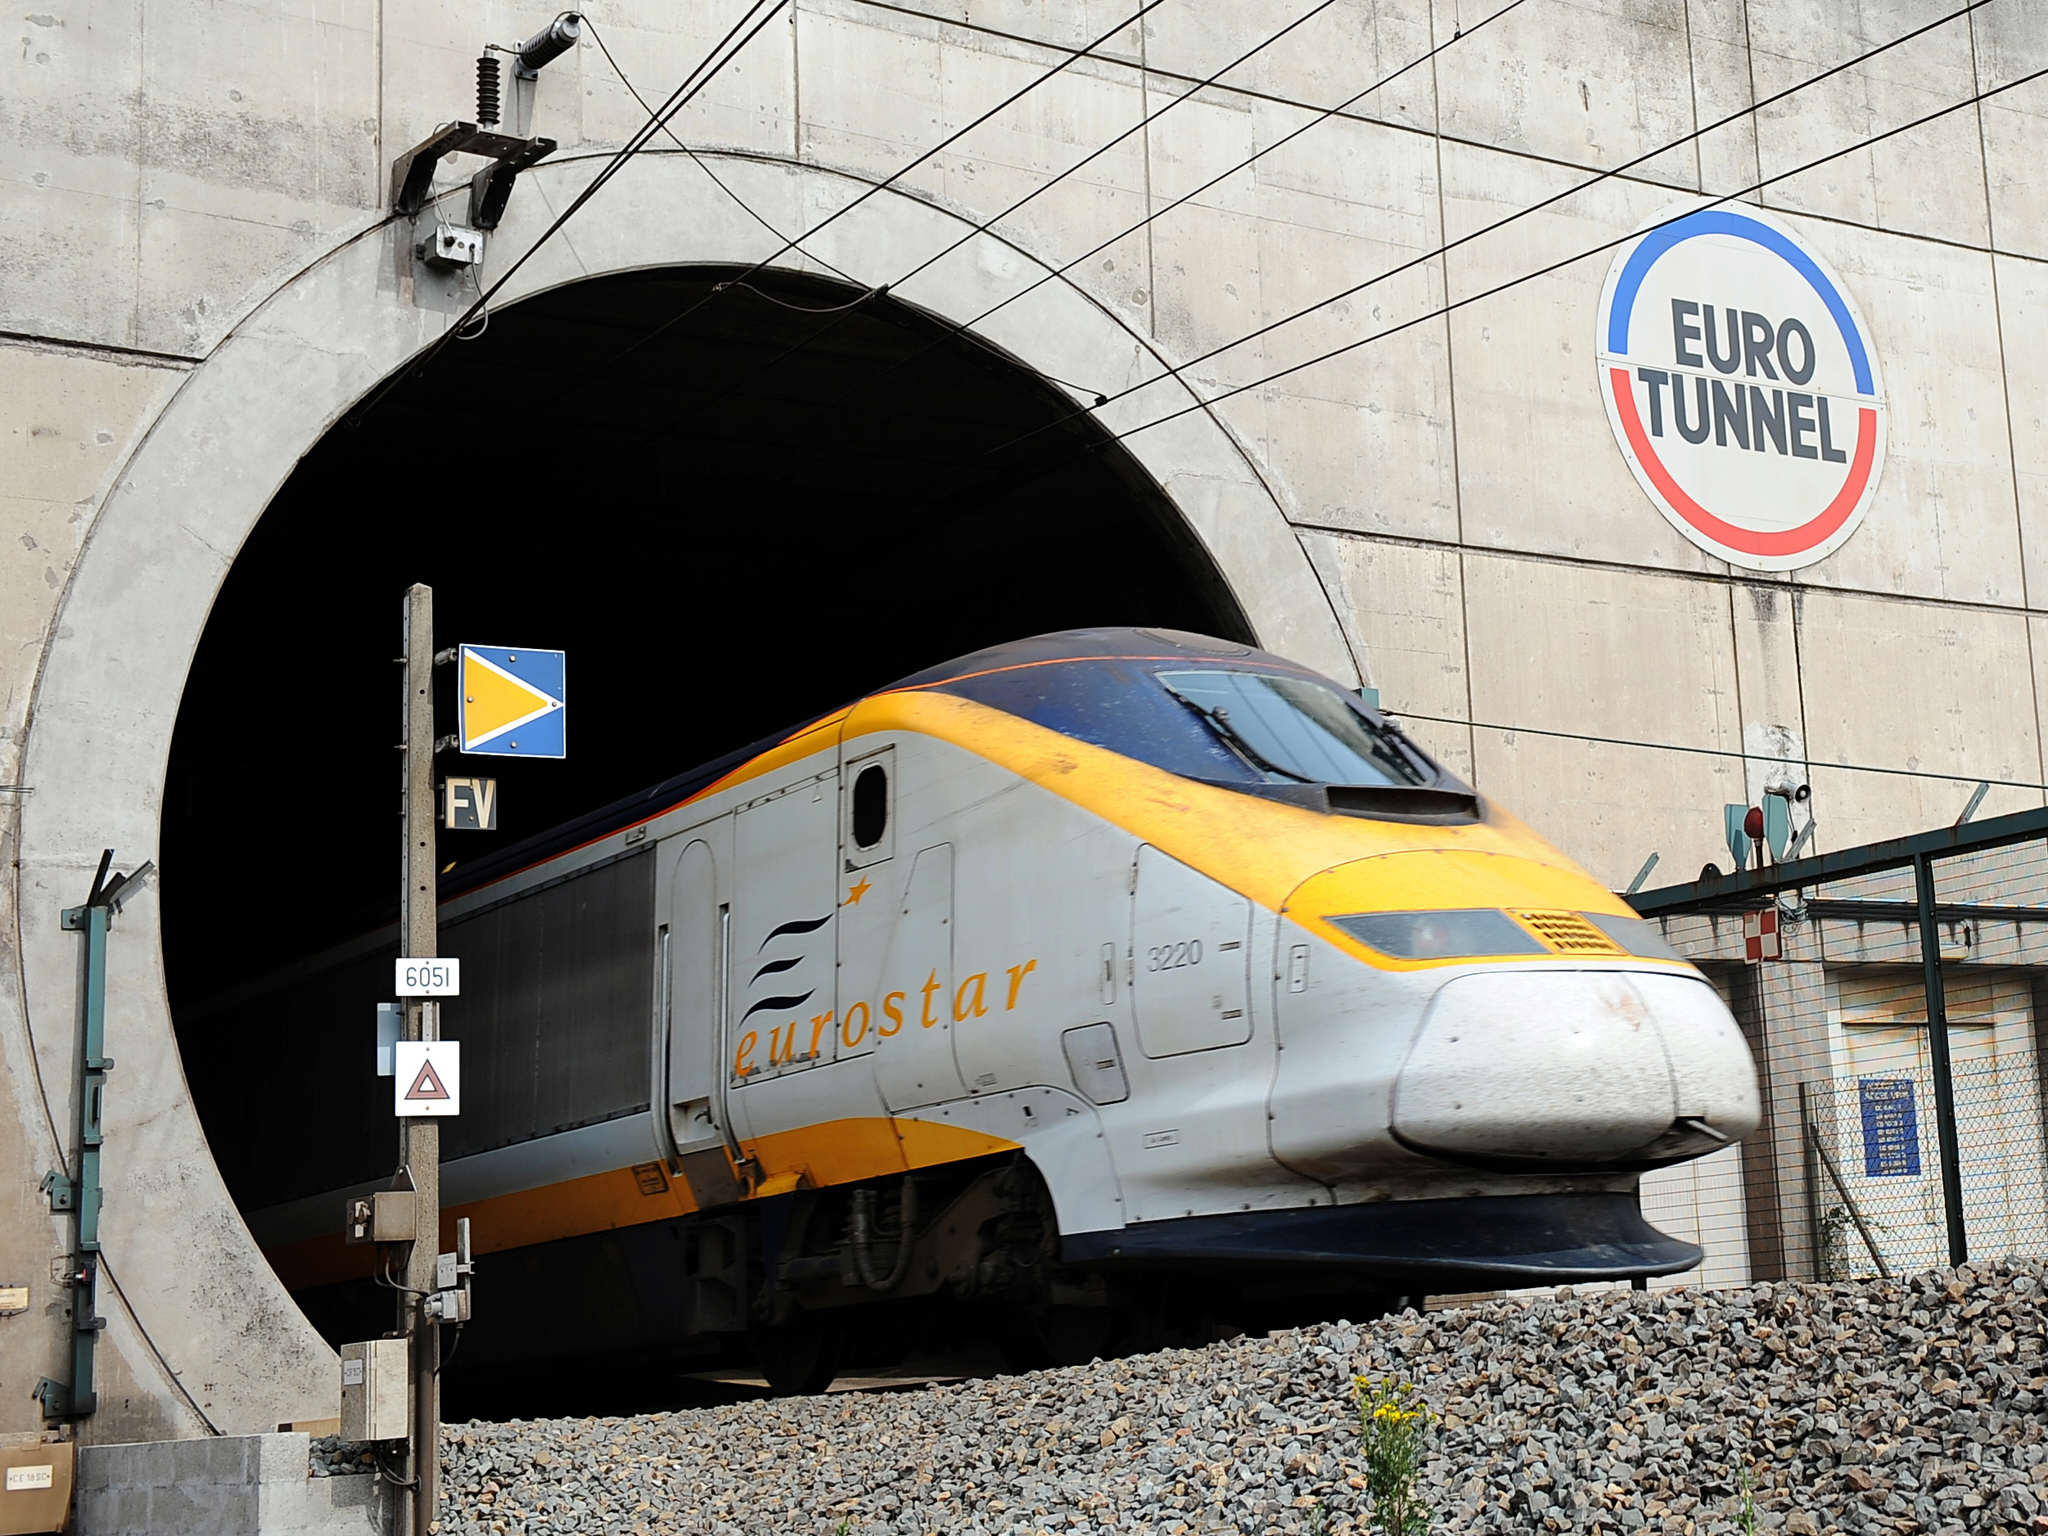 Eurostar Launches £35 London To Amsterdam Route Today